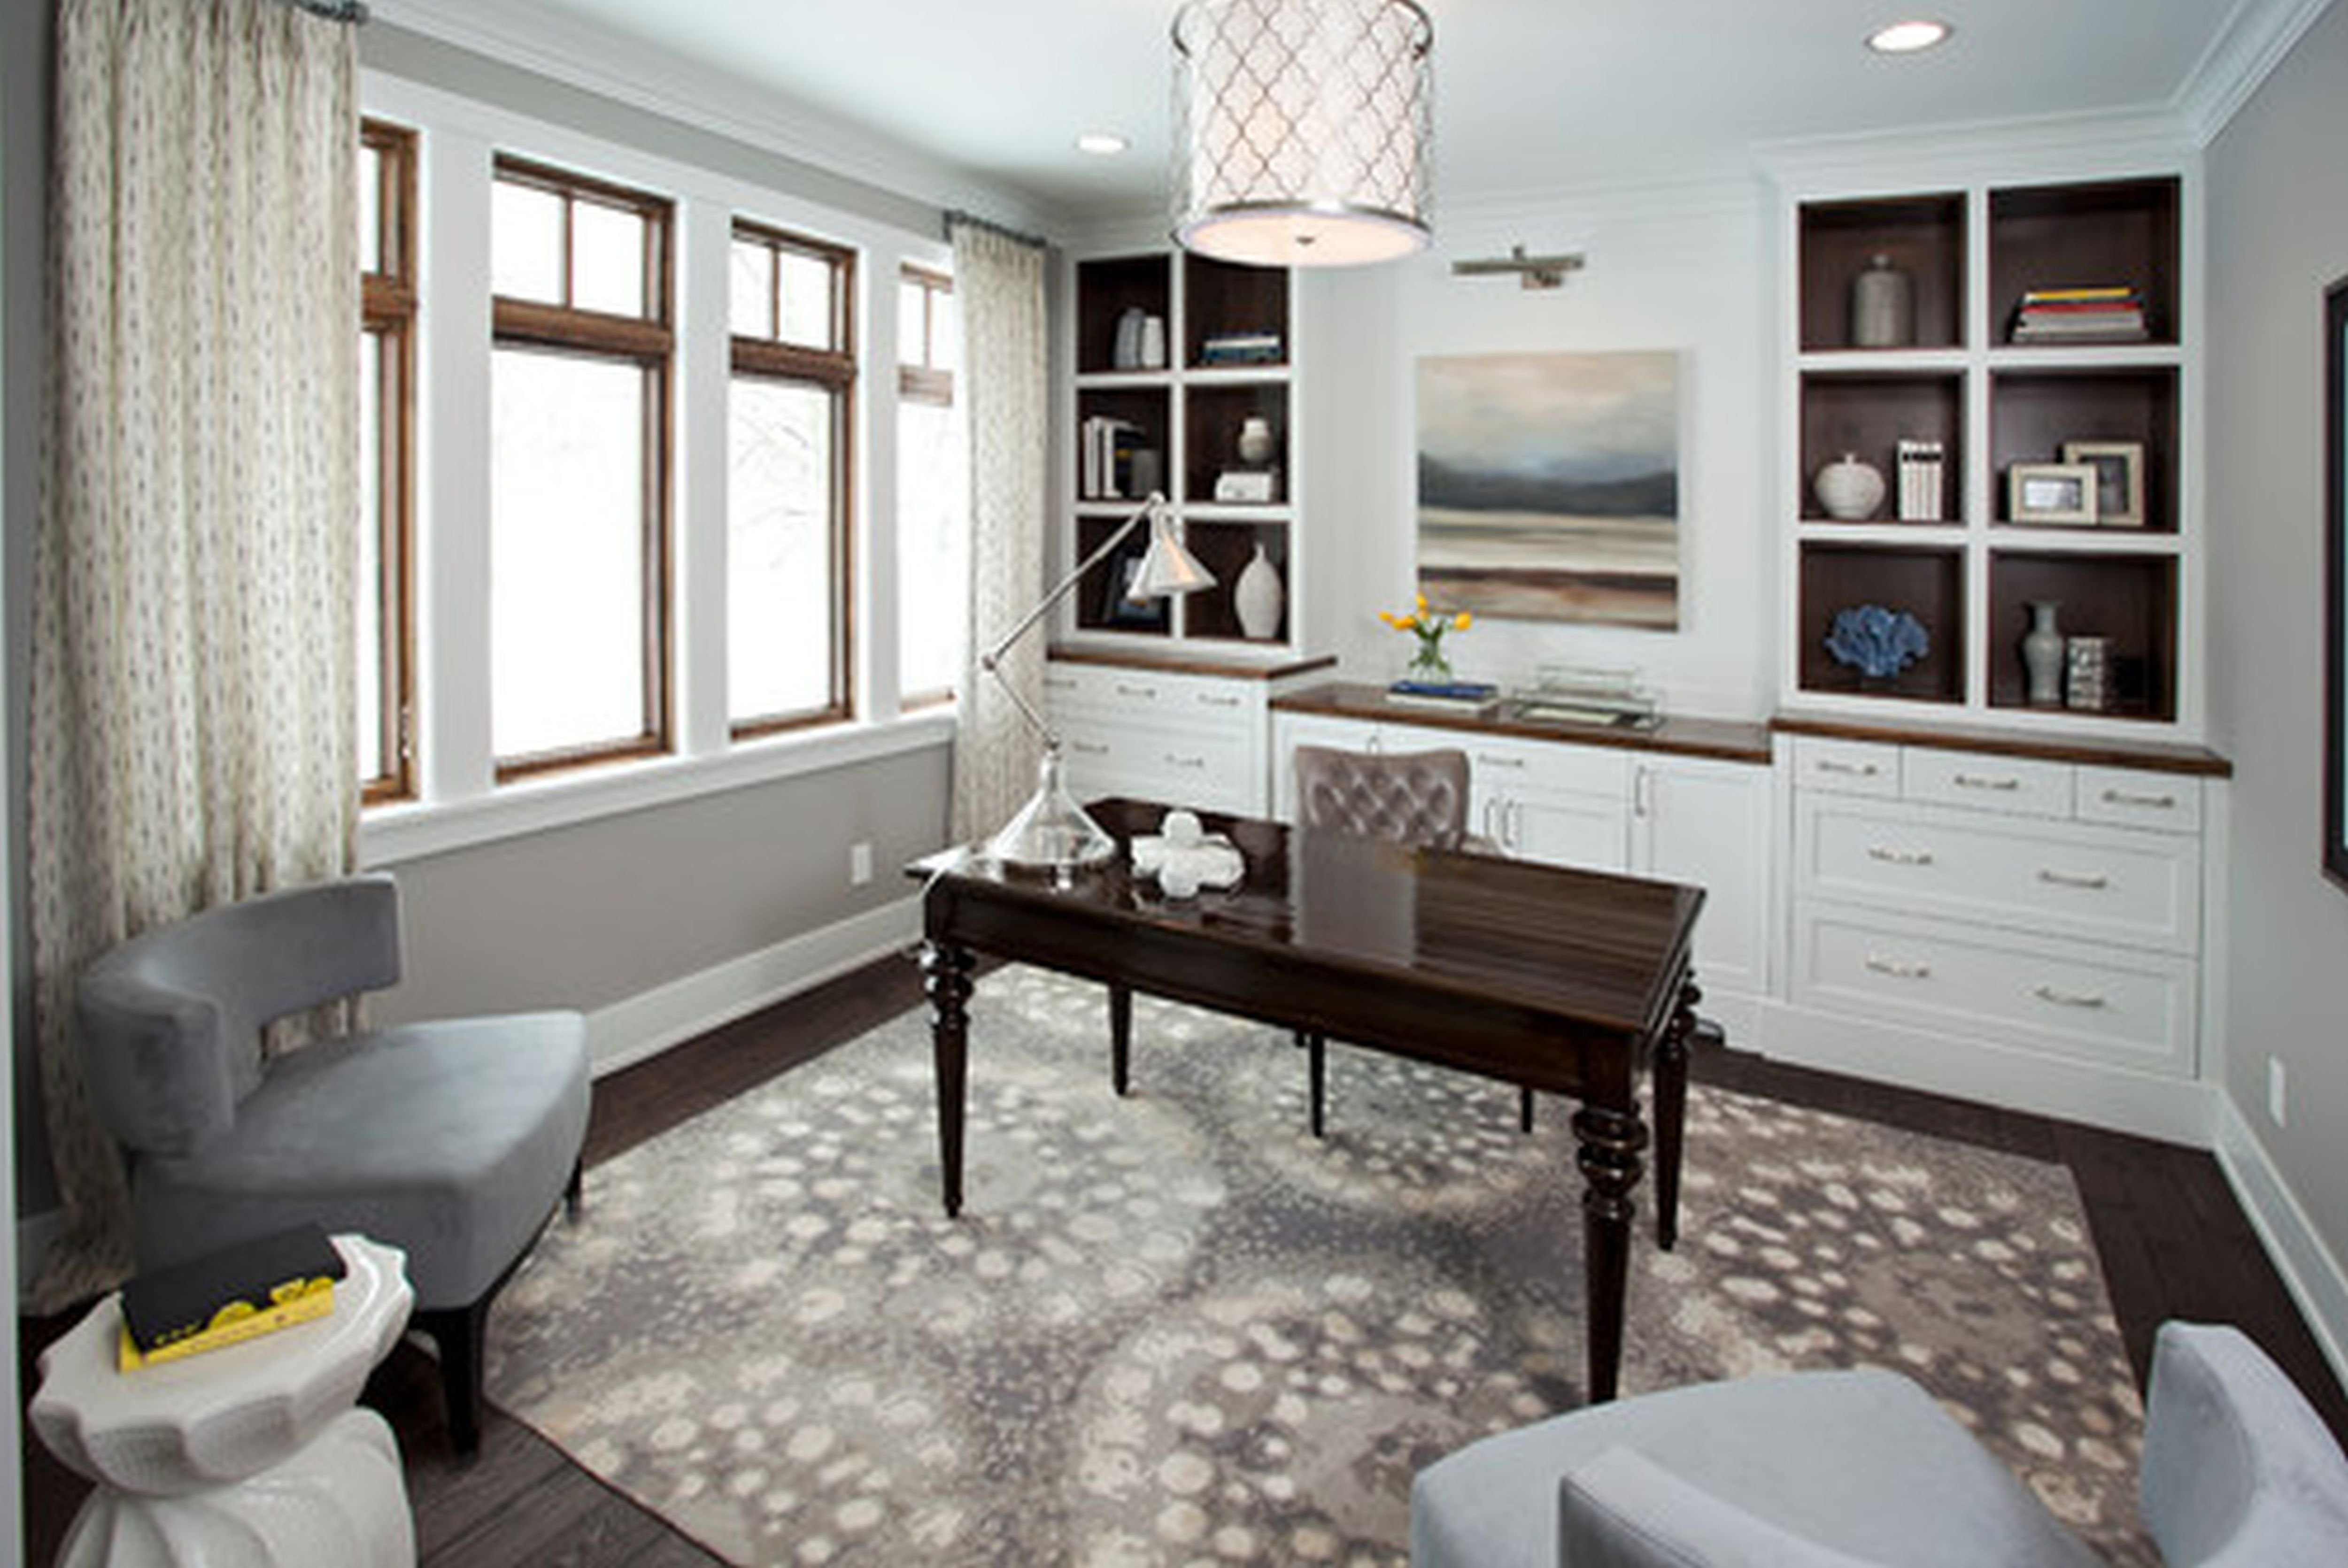 10 Best Decorating Ideas For Home Office modern home office decorating ideas luxury home office design 2020